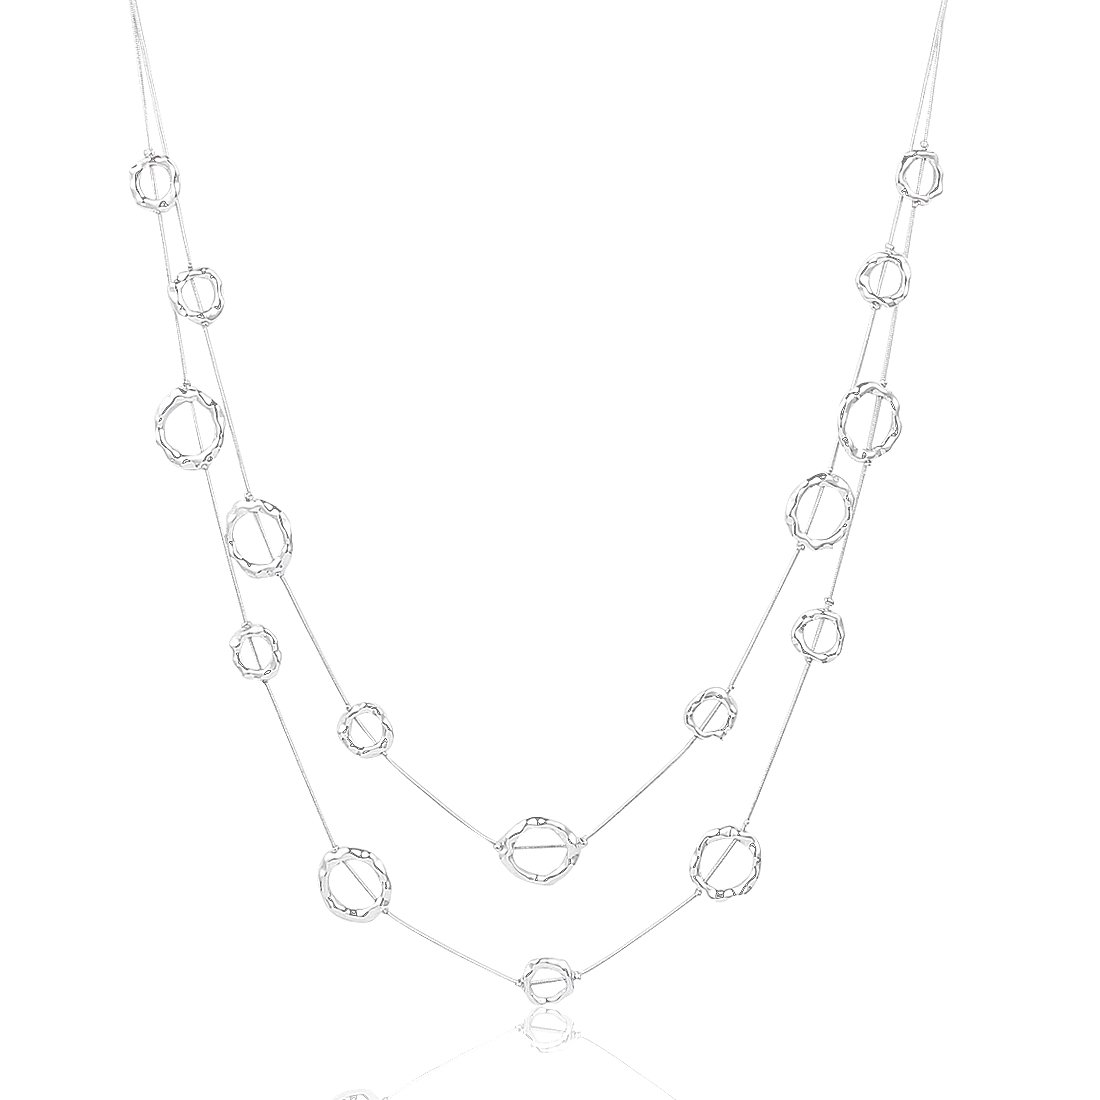 Silver Long Necklace Fashion Double Layered Sweater Necklace Hammered Loop Circle Long Necklace for Women